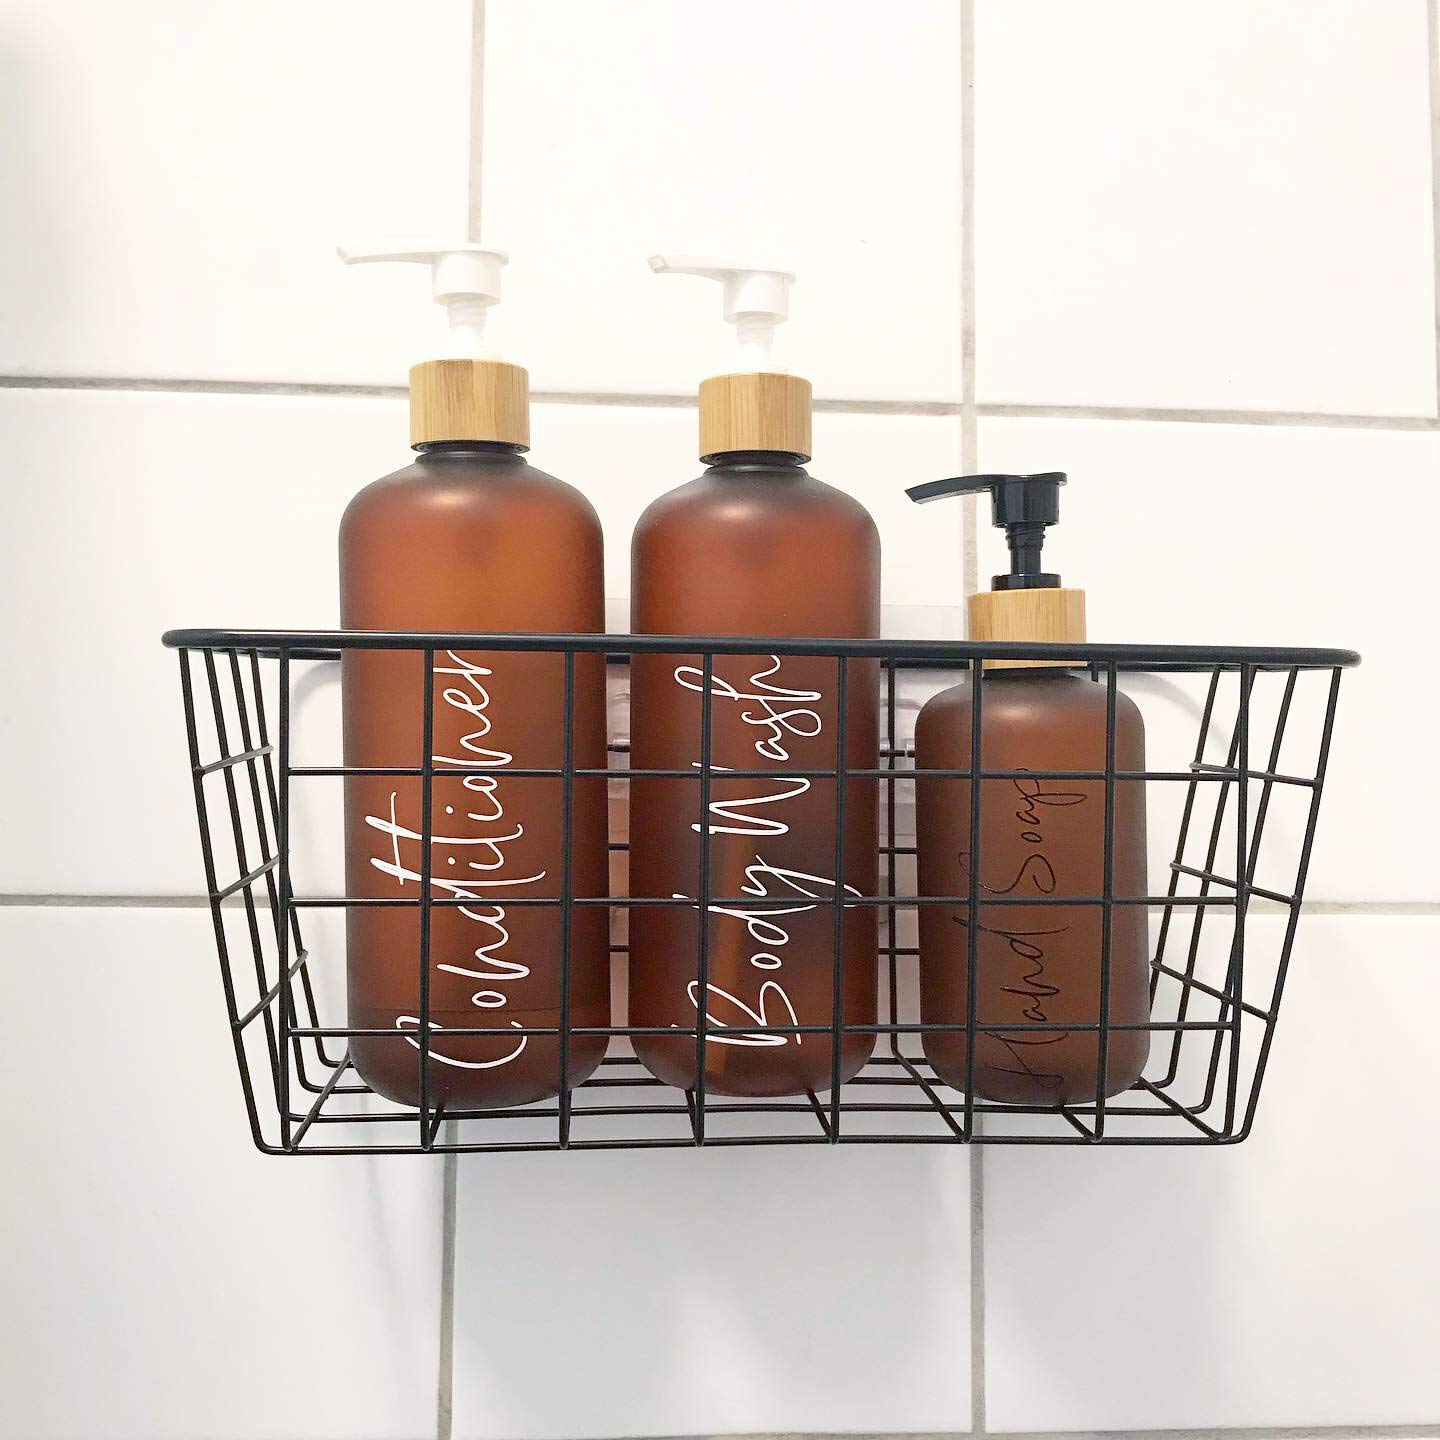 Soap Dispensers Mrs Hinch Soap Pumps Bamboo Bottles Mrs Hinch Bathroom Bottles Frosted Amber Bamboo Pump Toiletry Bottles